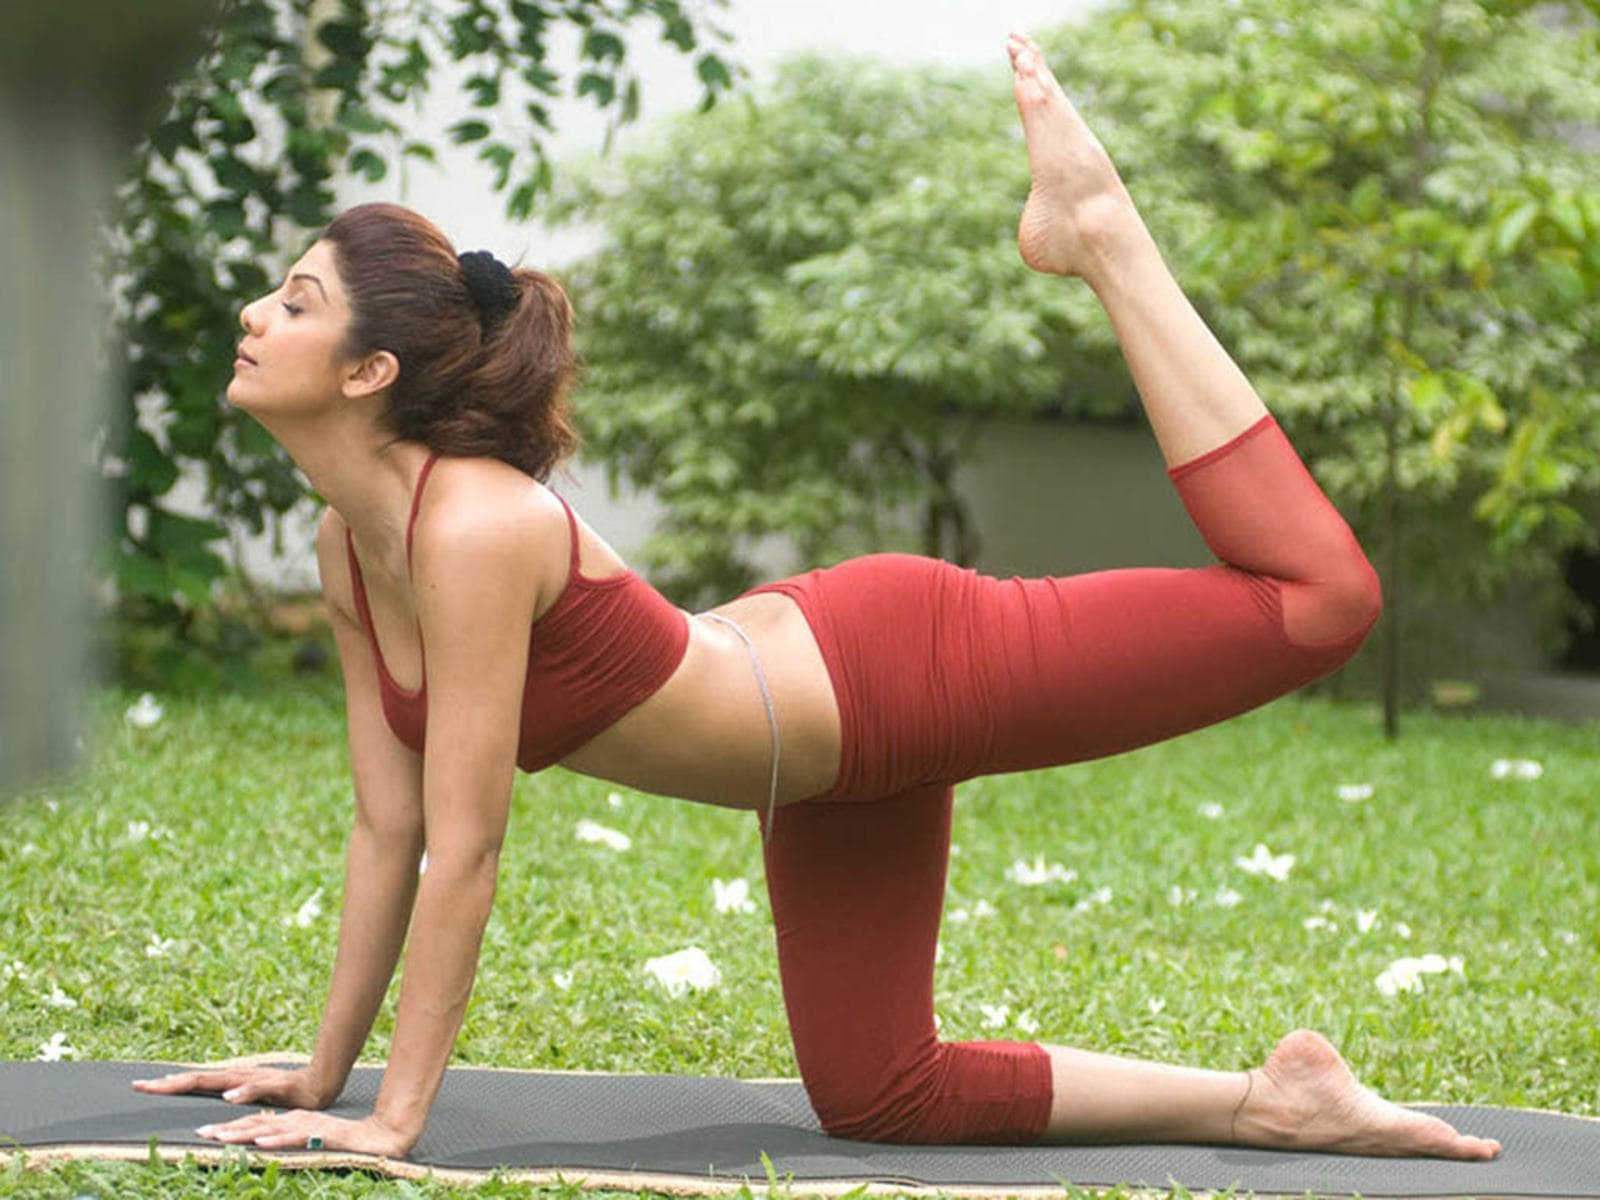 International Yoga Day on June 21, celebrities who practice yoga daily